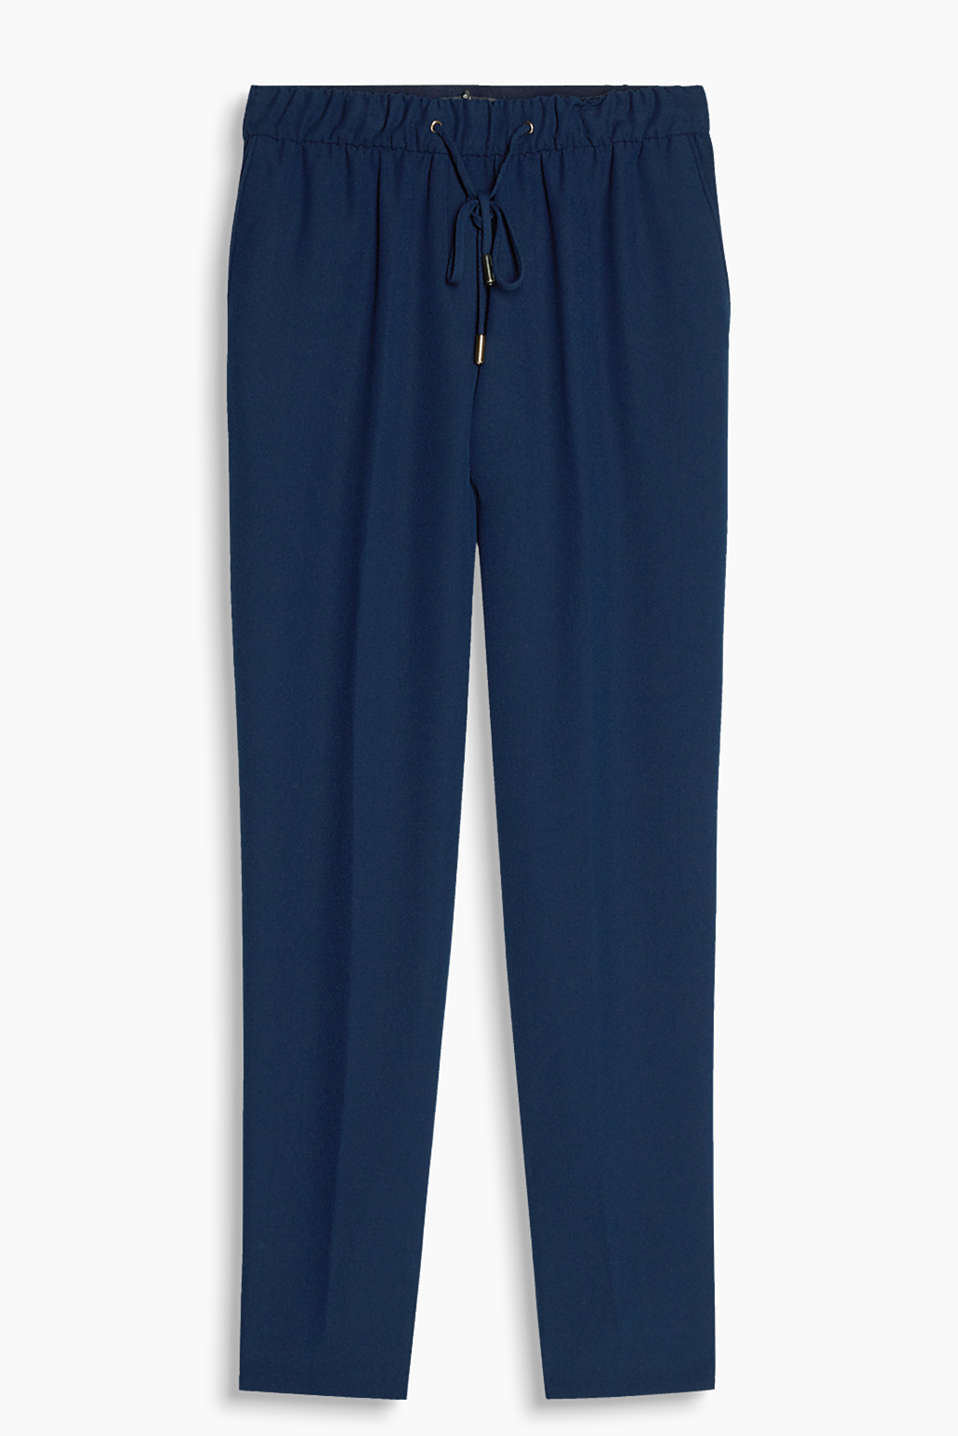 Casual and smart trousers in a loose cut made of flowing crêpe with an elasticated waistband